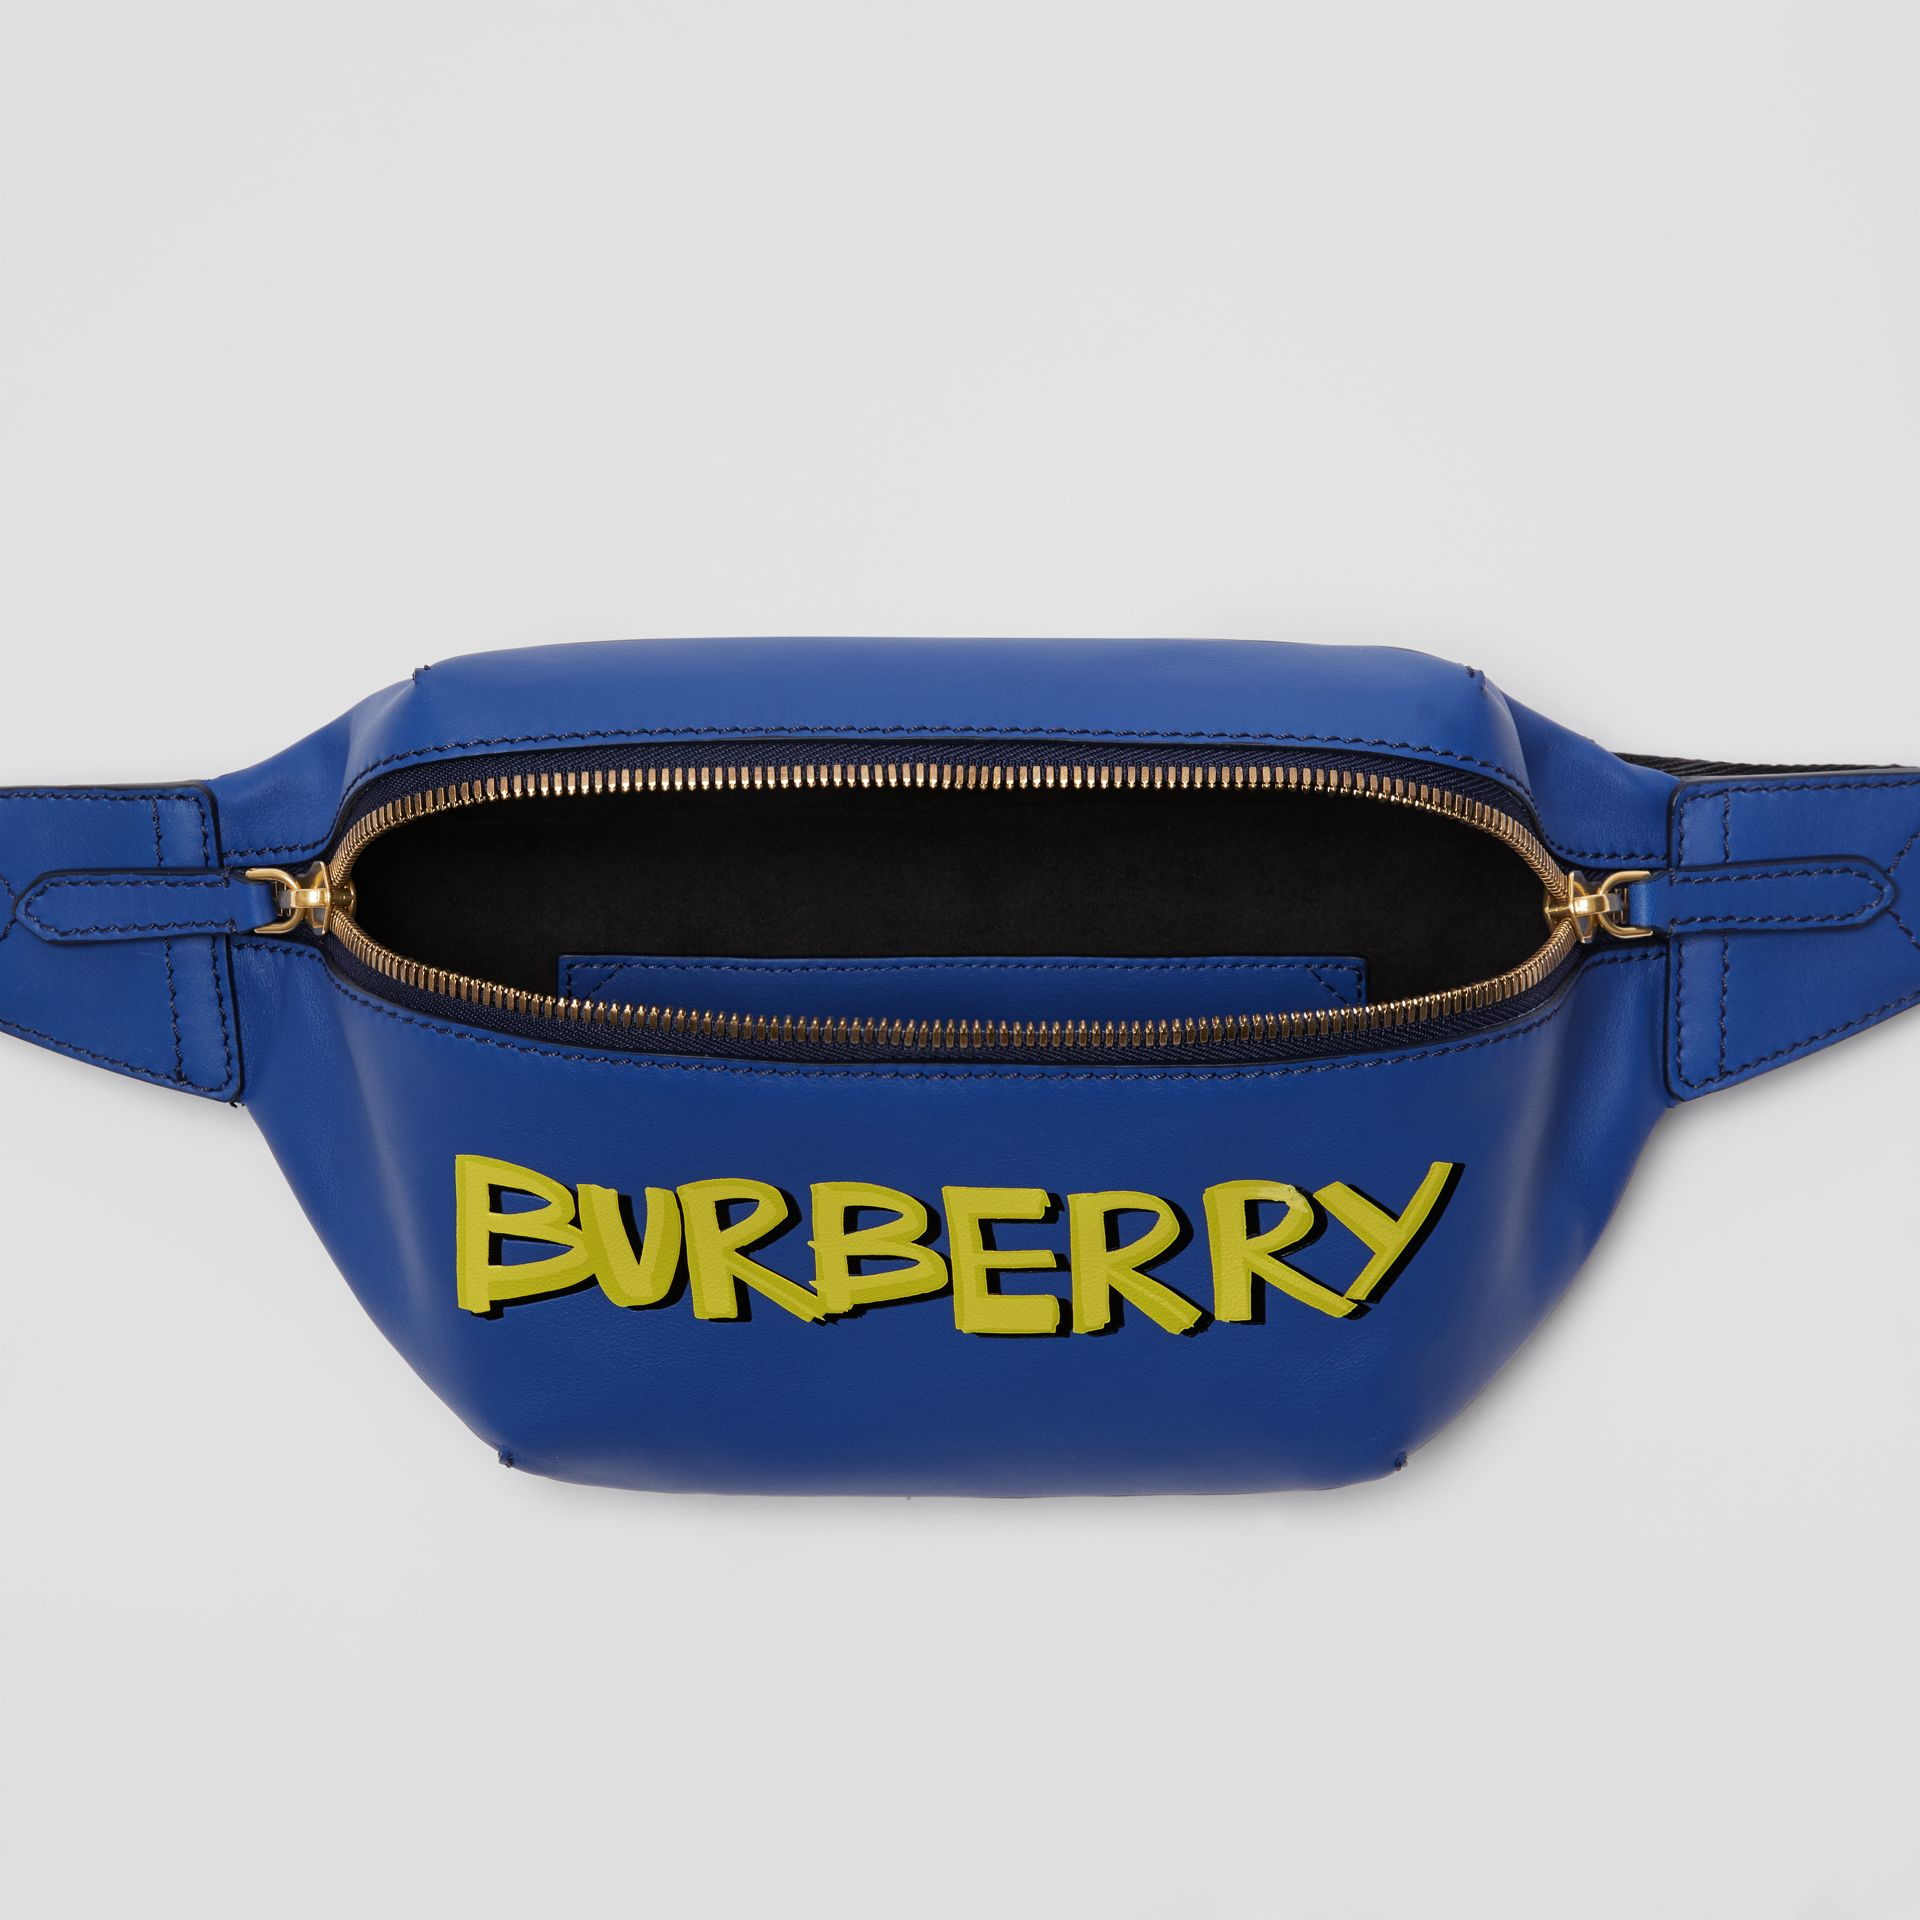 Medium Graffiti Print Leather Bum Bag in Denim Blue - Men | Burberry - gallery image 3